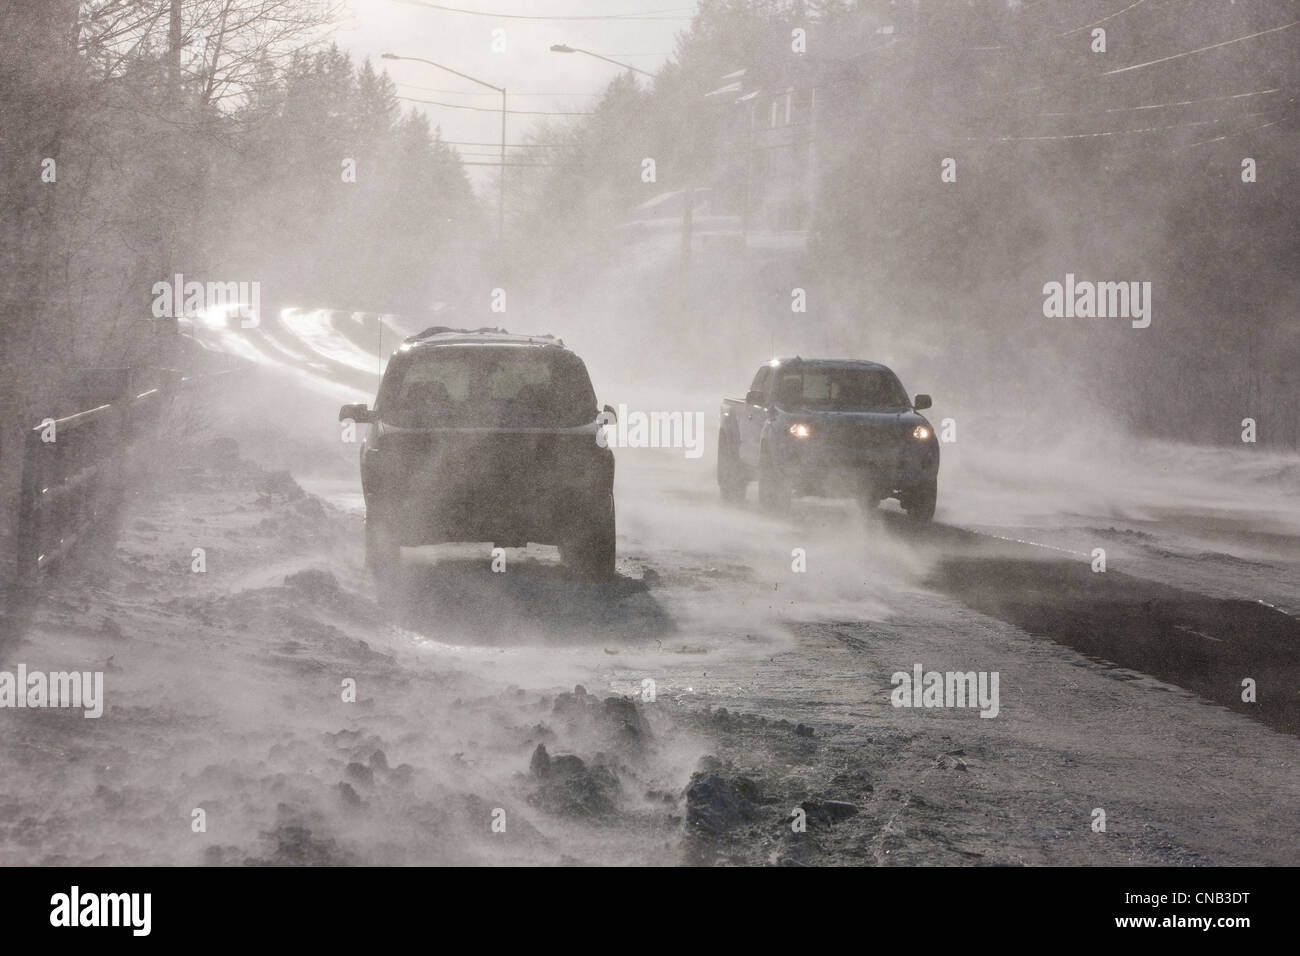 Vehicles drive on Douglas Roadway obscured by 70 mph blowing wind and snow, Juneau, Southeast Alaska, Winter Stock Photo